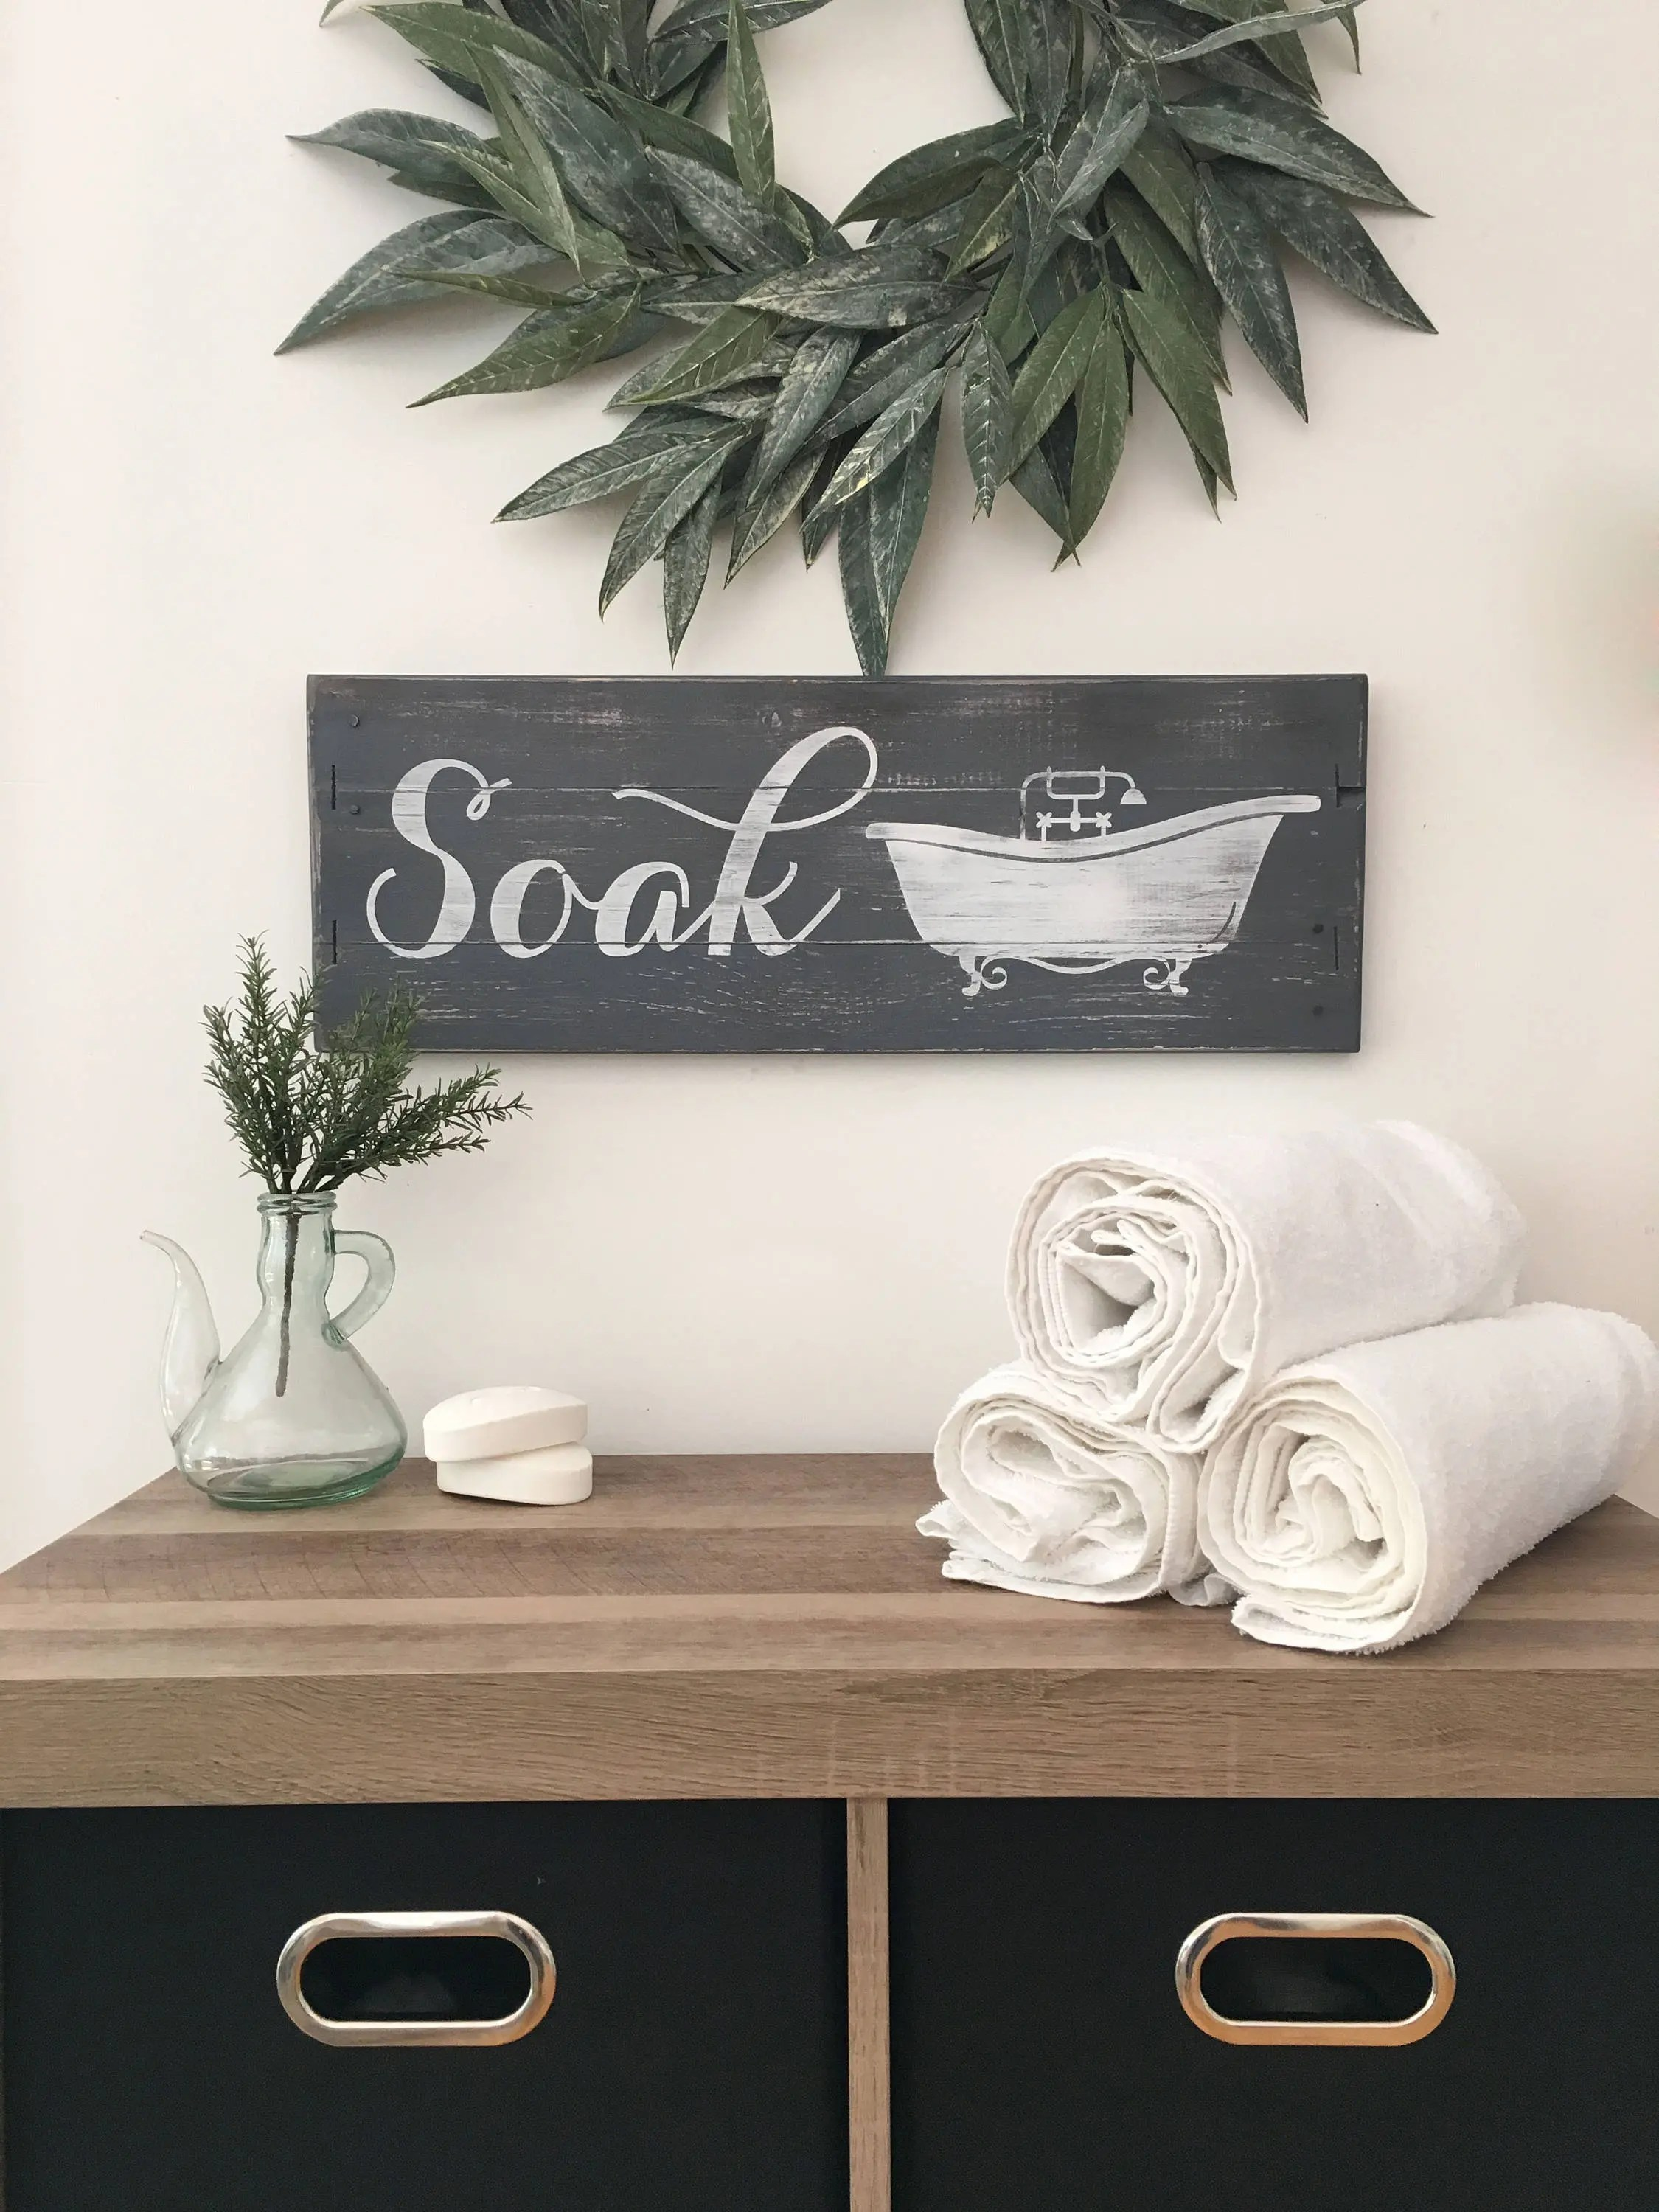 RUSTIC BATHROOM DECOR Soak Sign Farmhouse Bathroom Wood